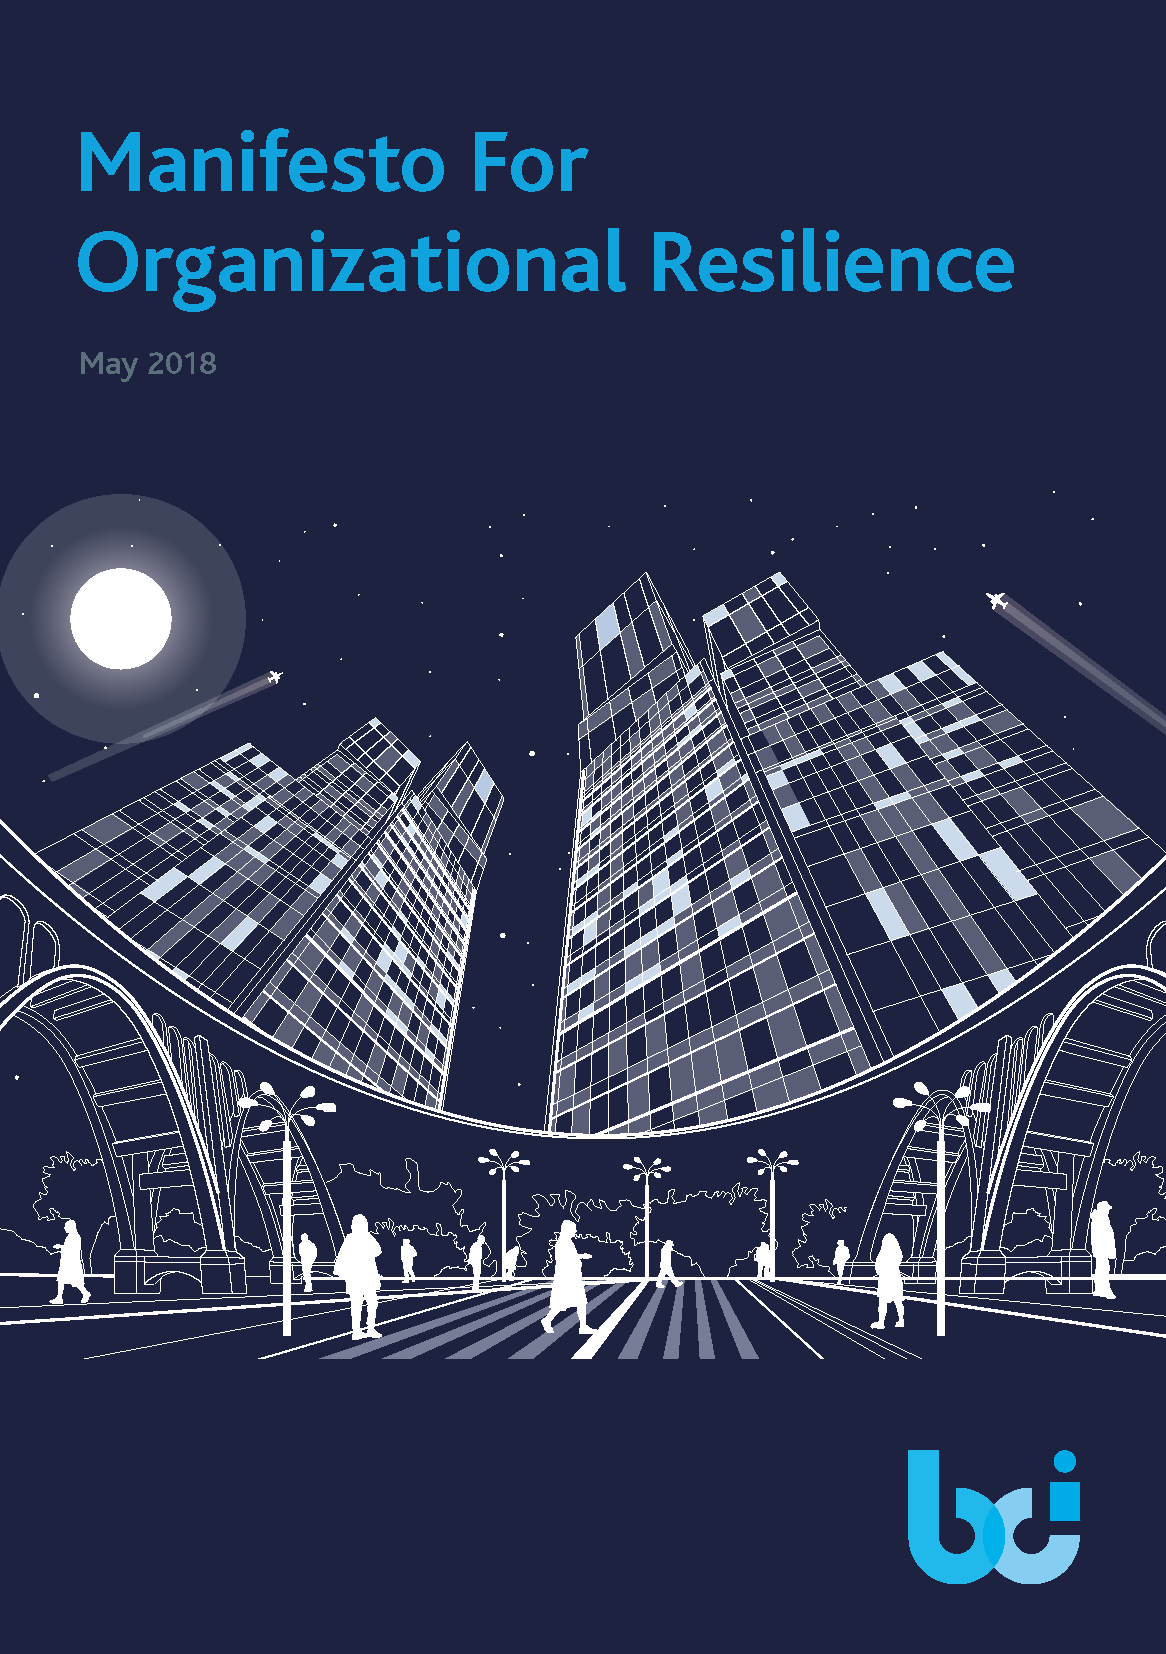 BCI Manifesto for Organizational Resilience